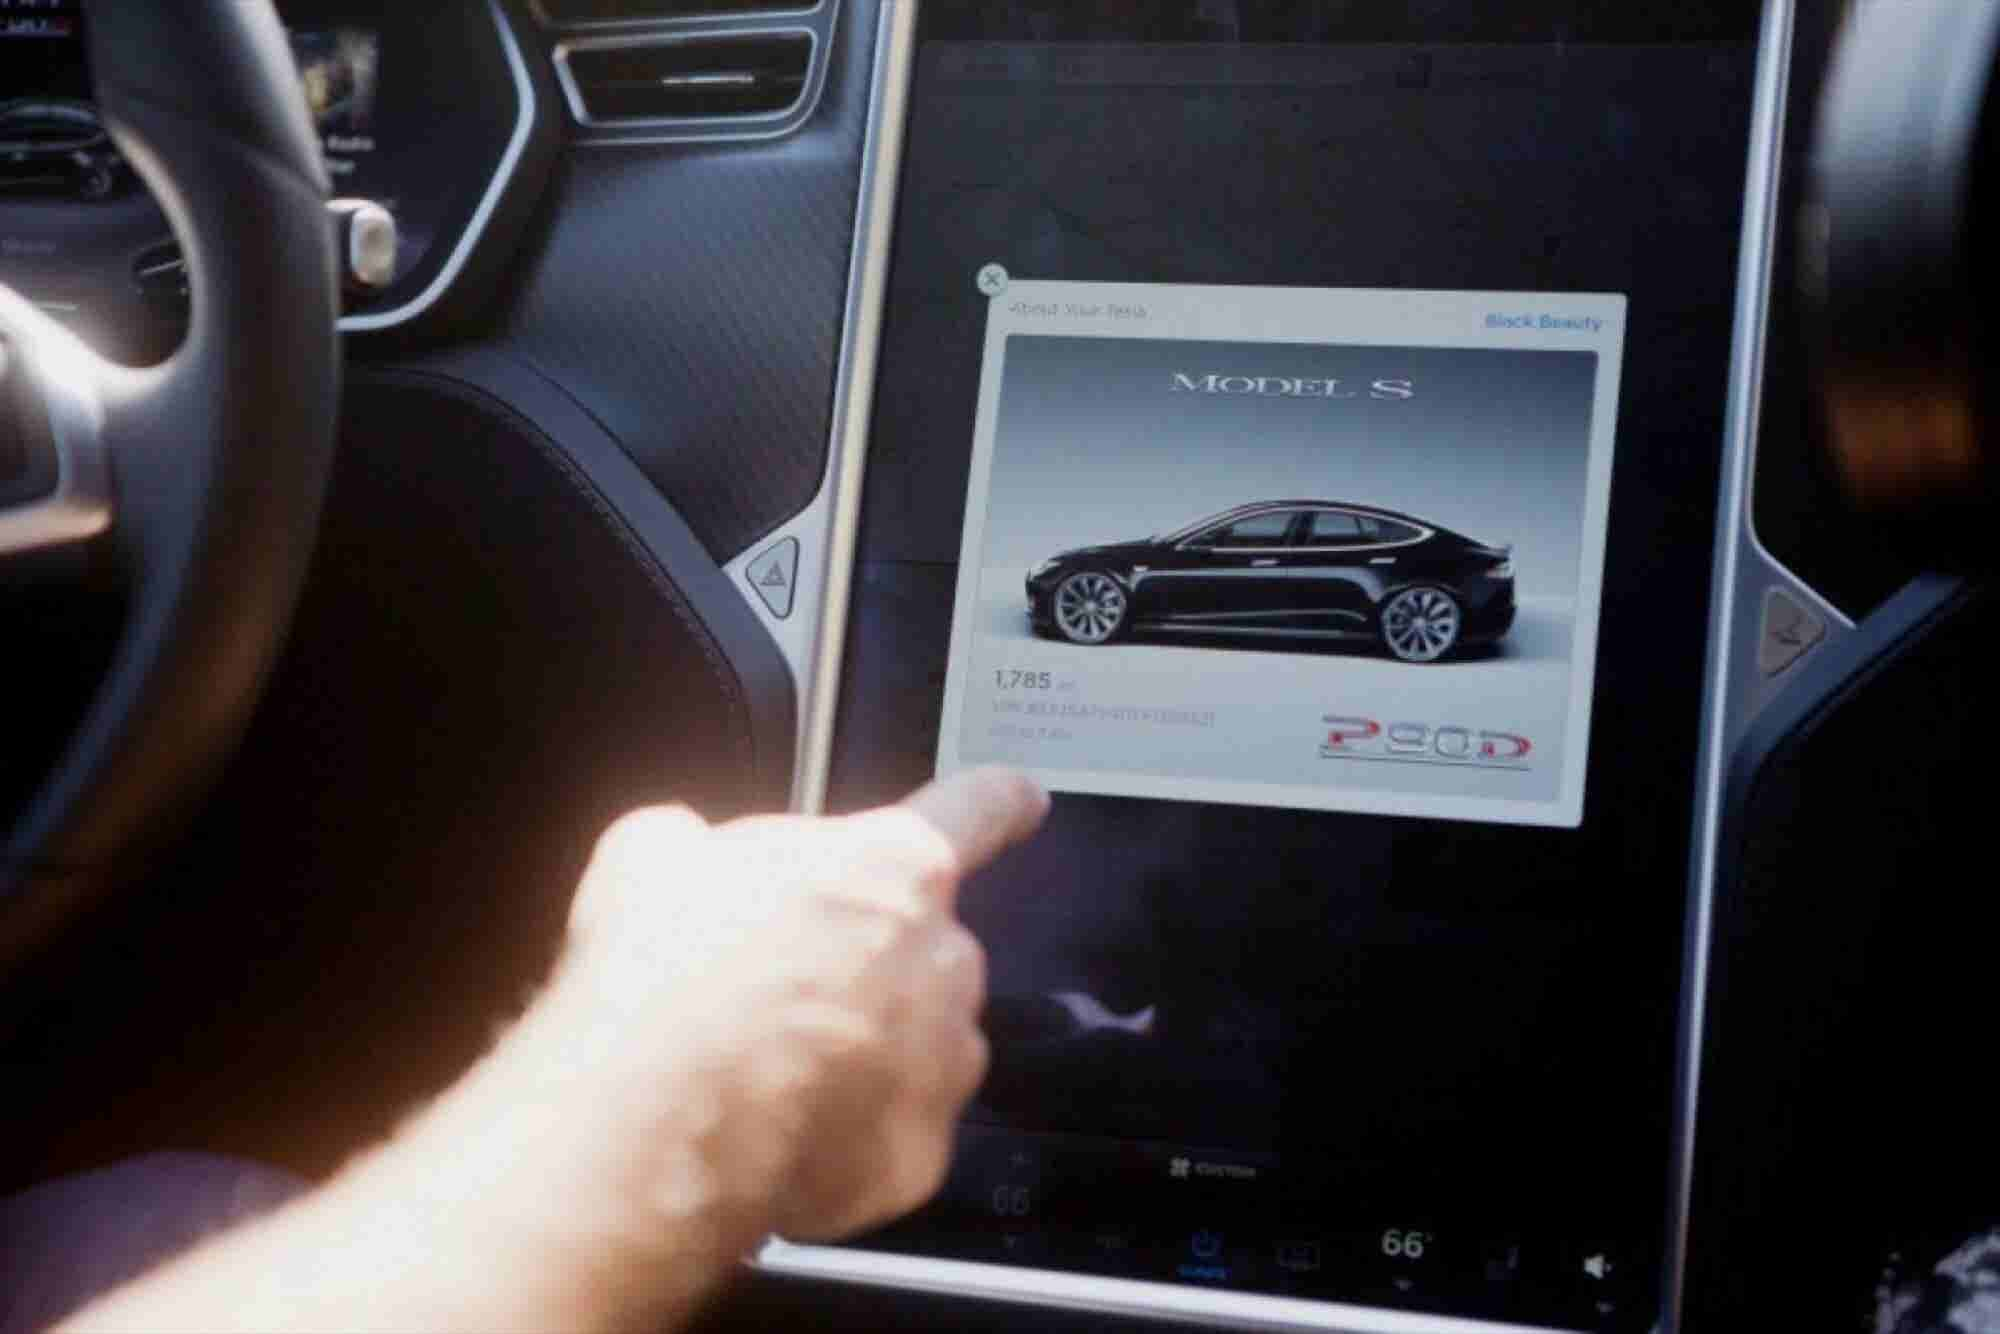 U.S. Vehicle Safety Regulator Stands Behind Self-Driving Cars